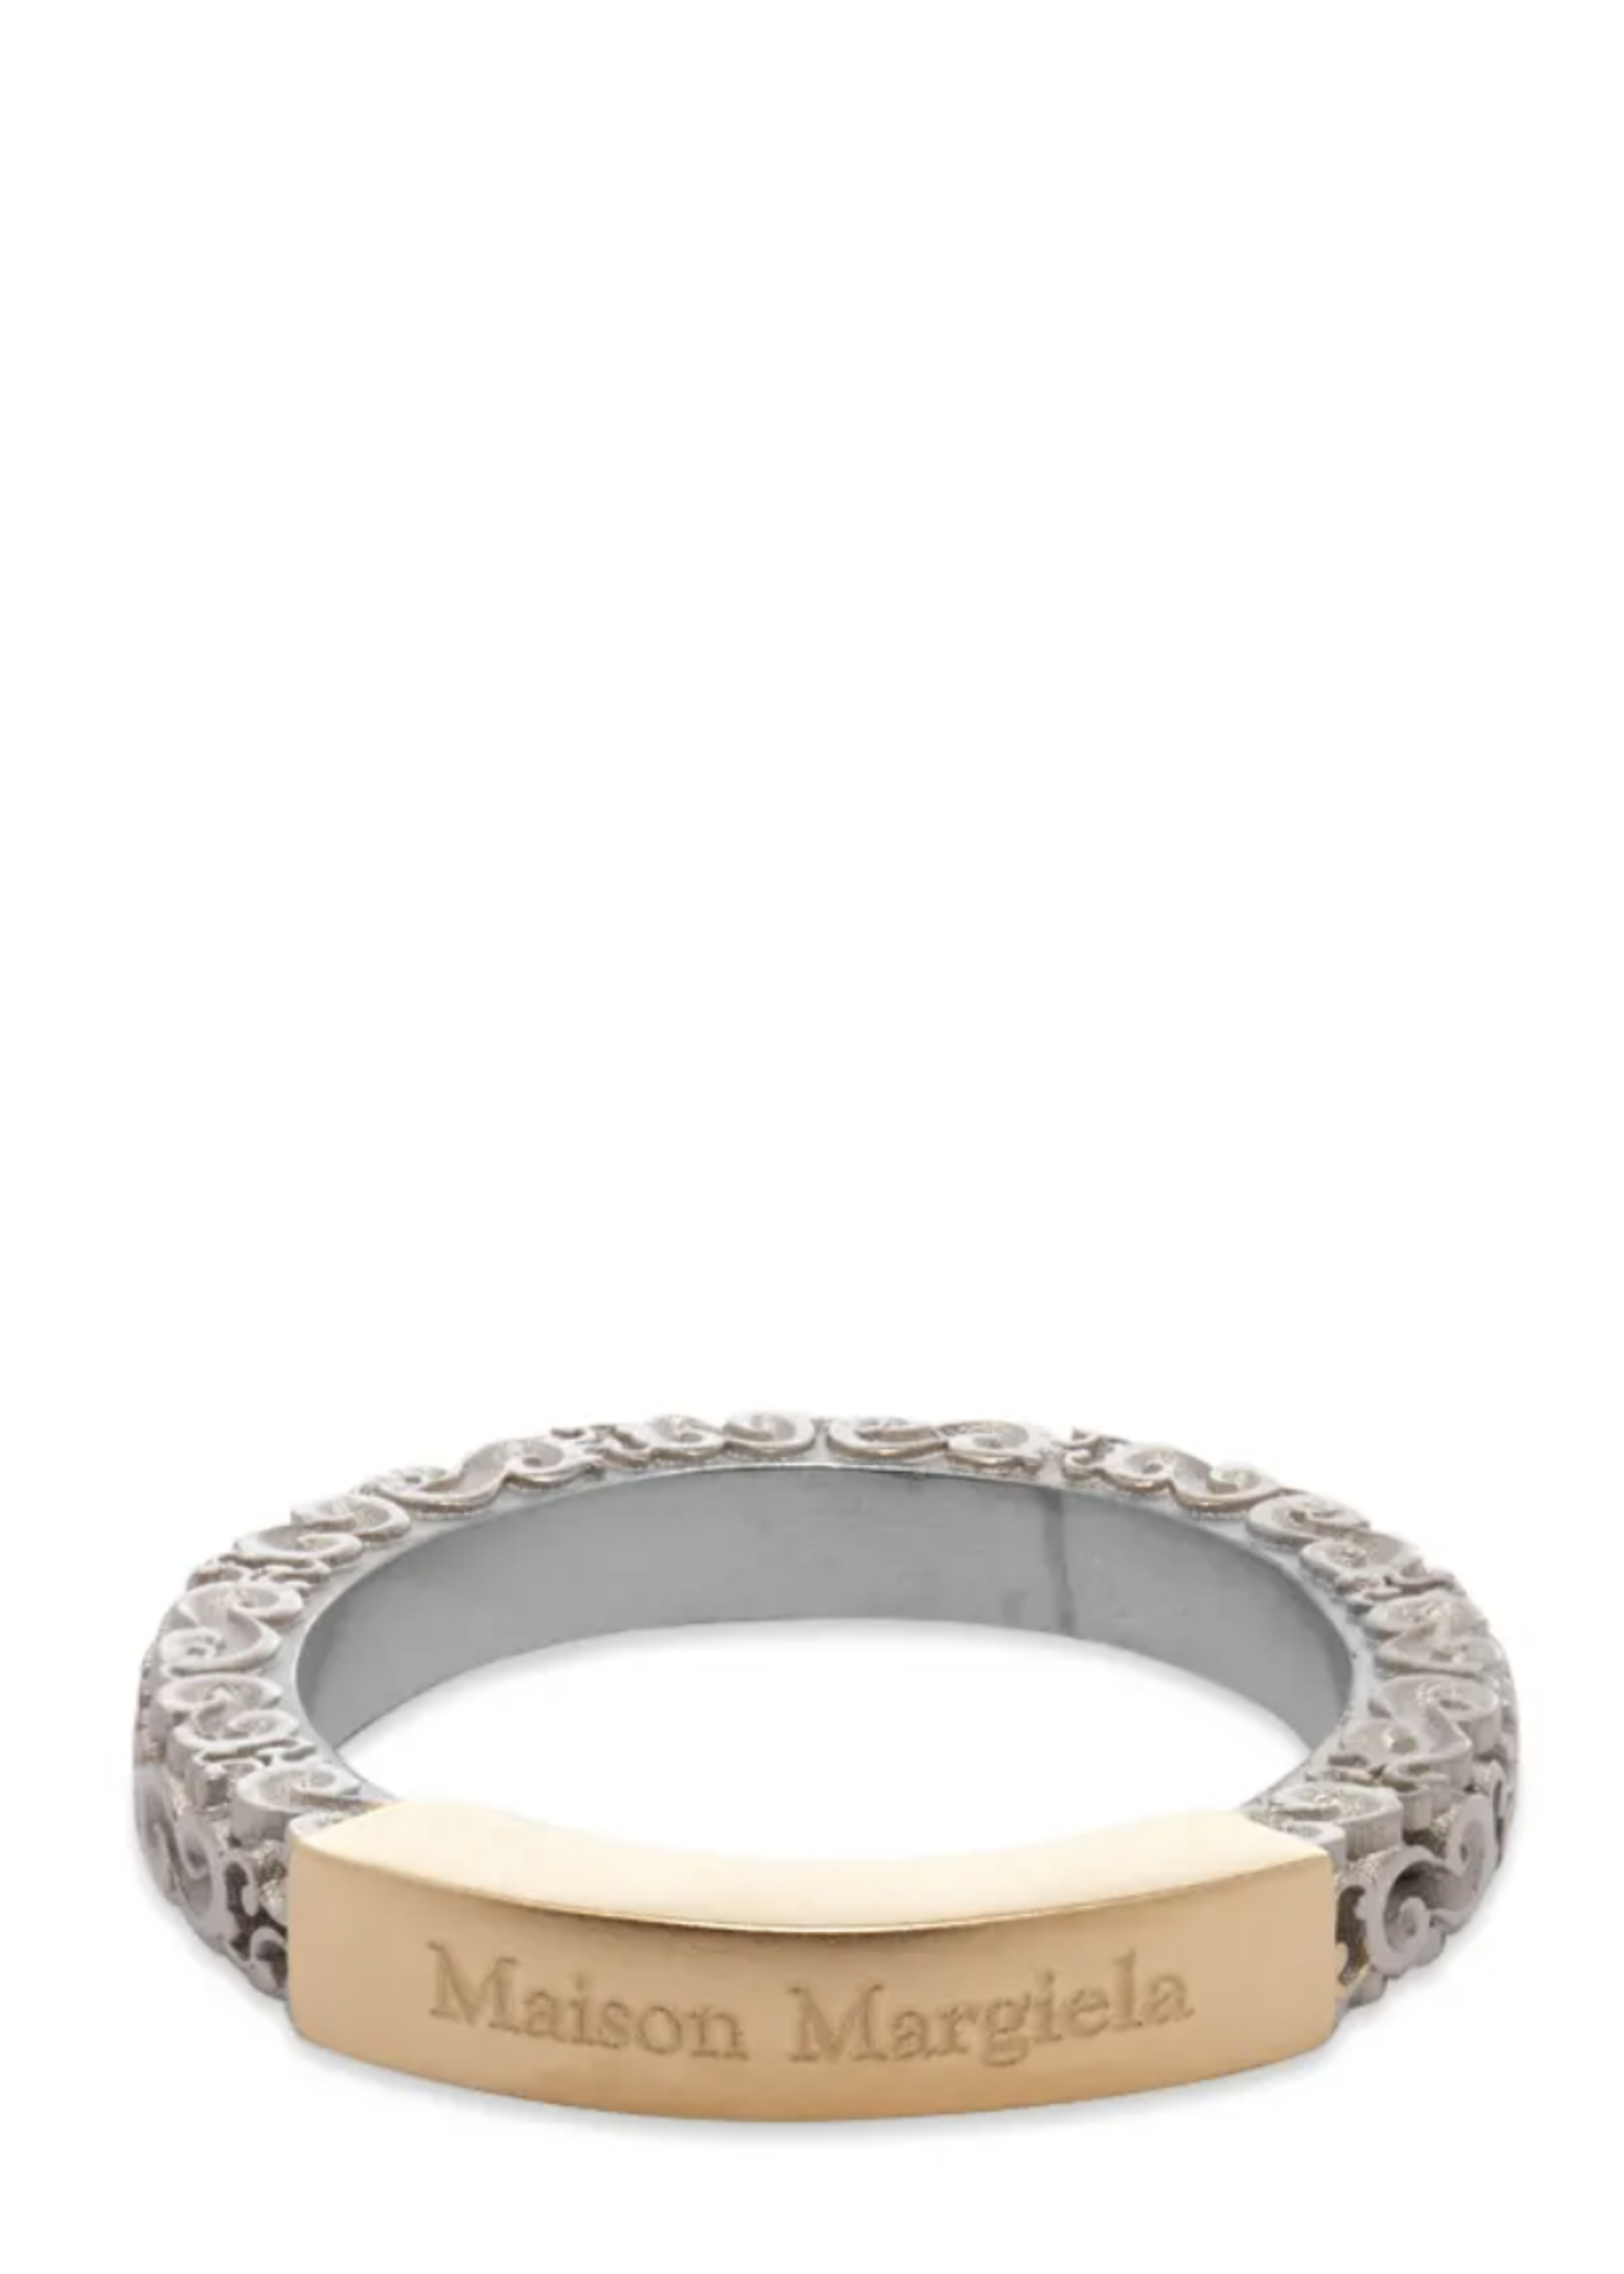 Maison Margiela Logo ring in Silver and Gold